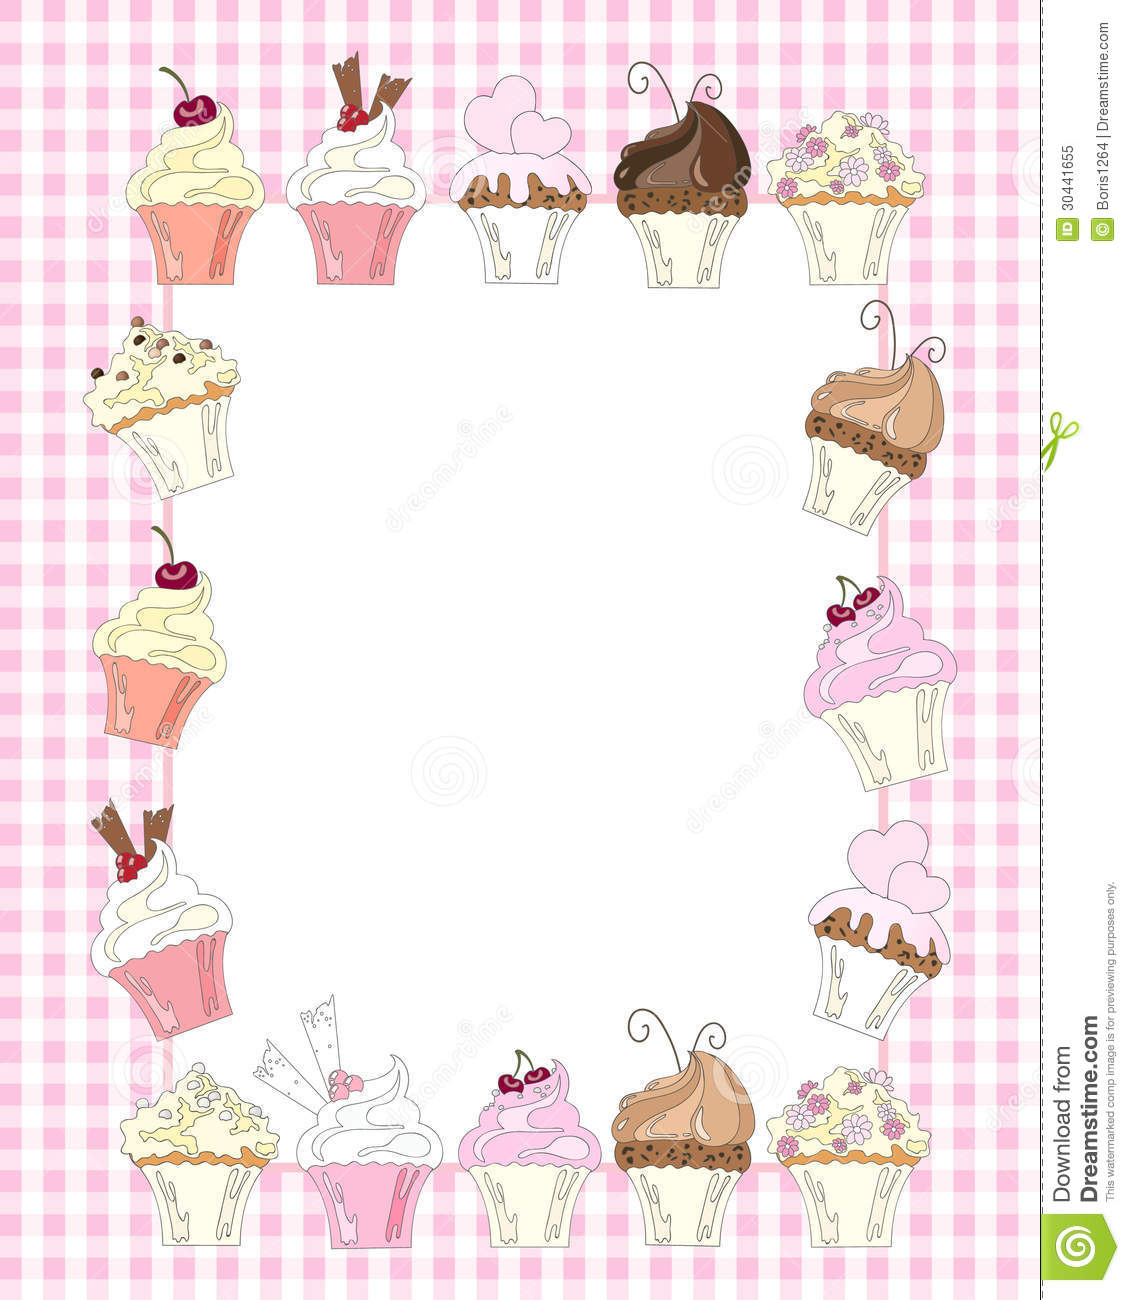 cupcake border royalty free stock photo image 30441655 muffin clip art black and white free muffin clip art black and white